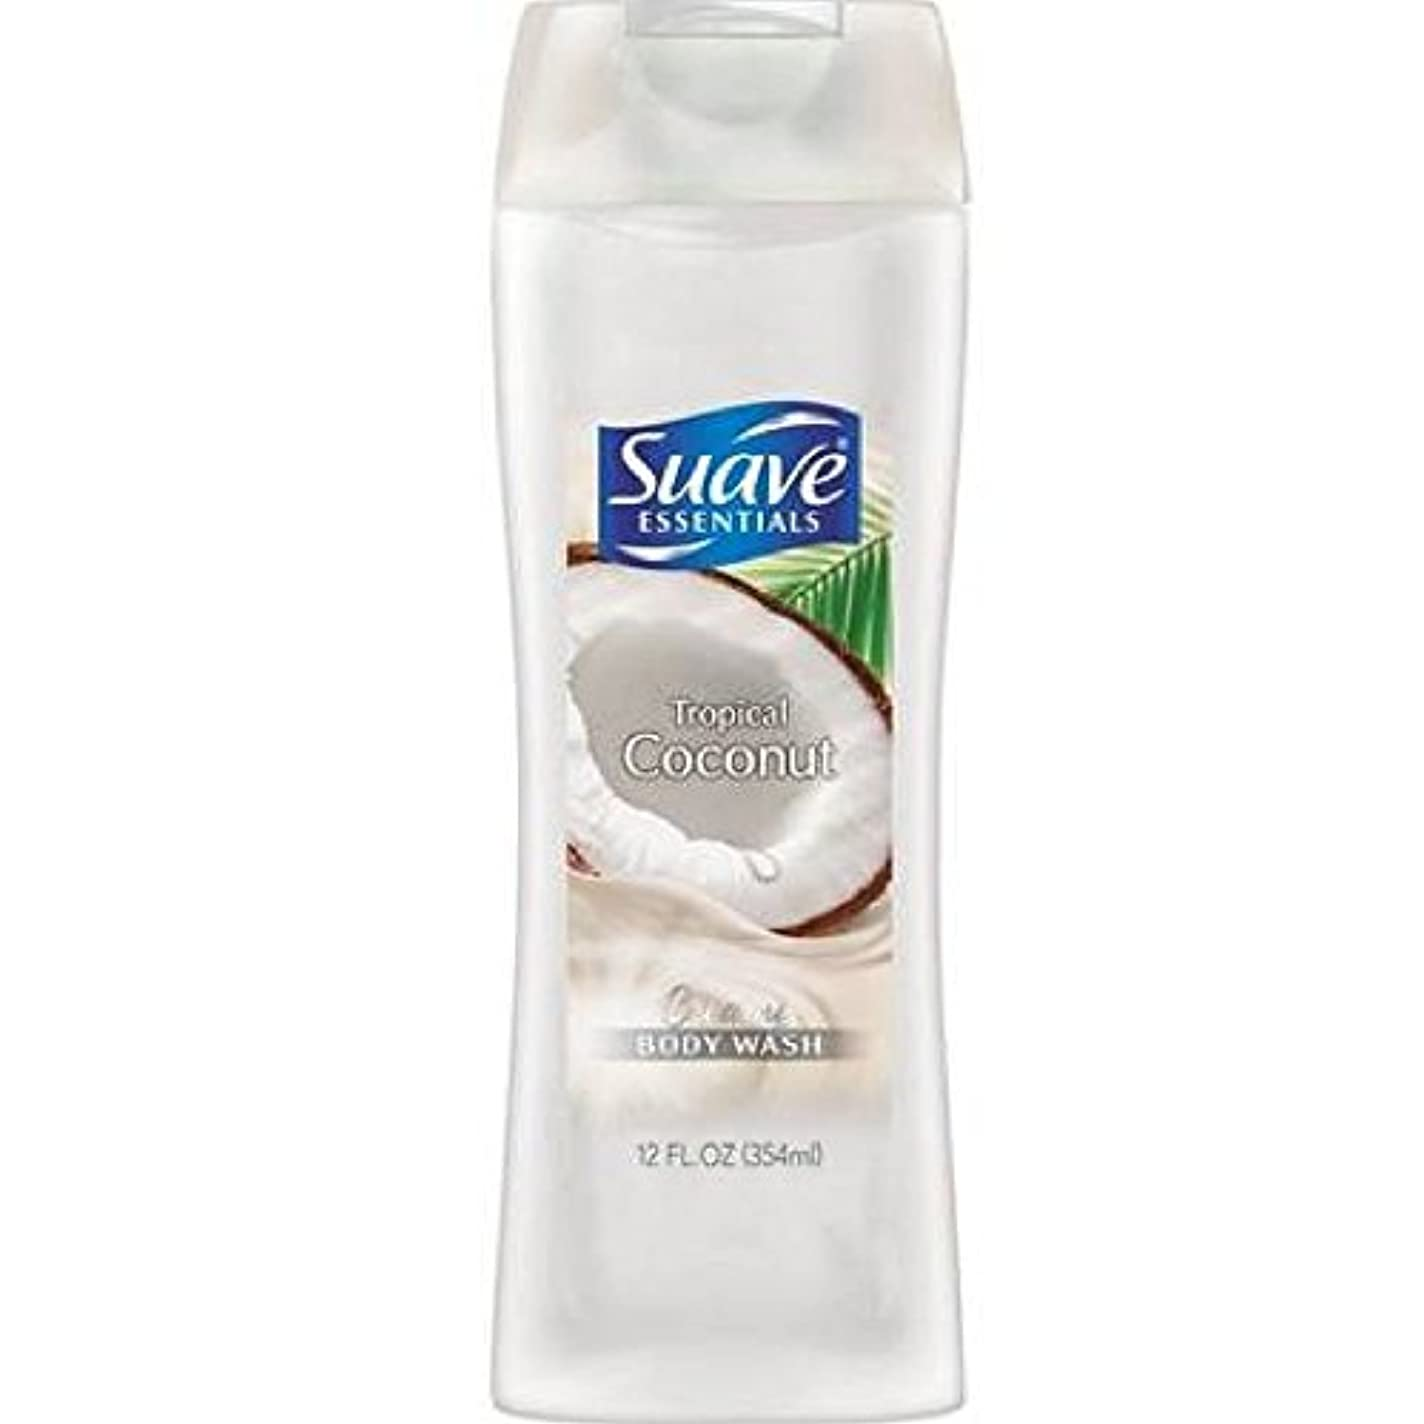 工業用滑りやすい専門Suave Naturals Body Wash - Tropical Coconut - 12 oz - 2 pk by Suave [並行輸入品]